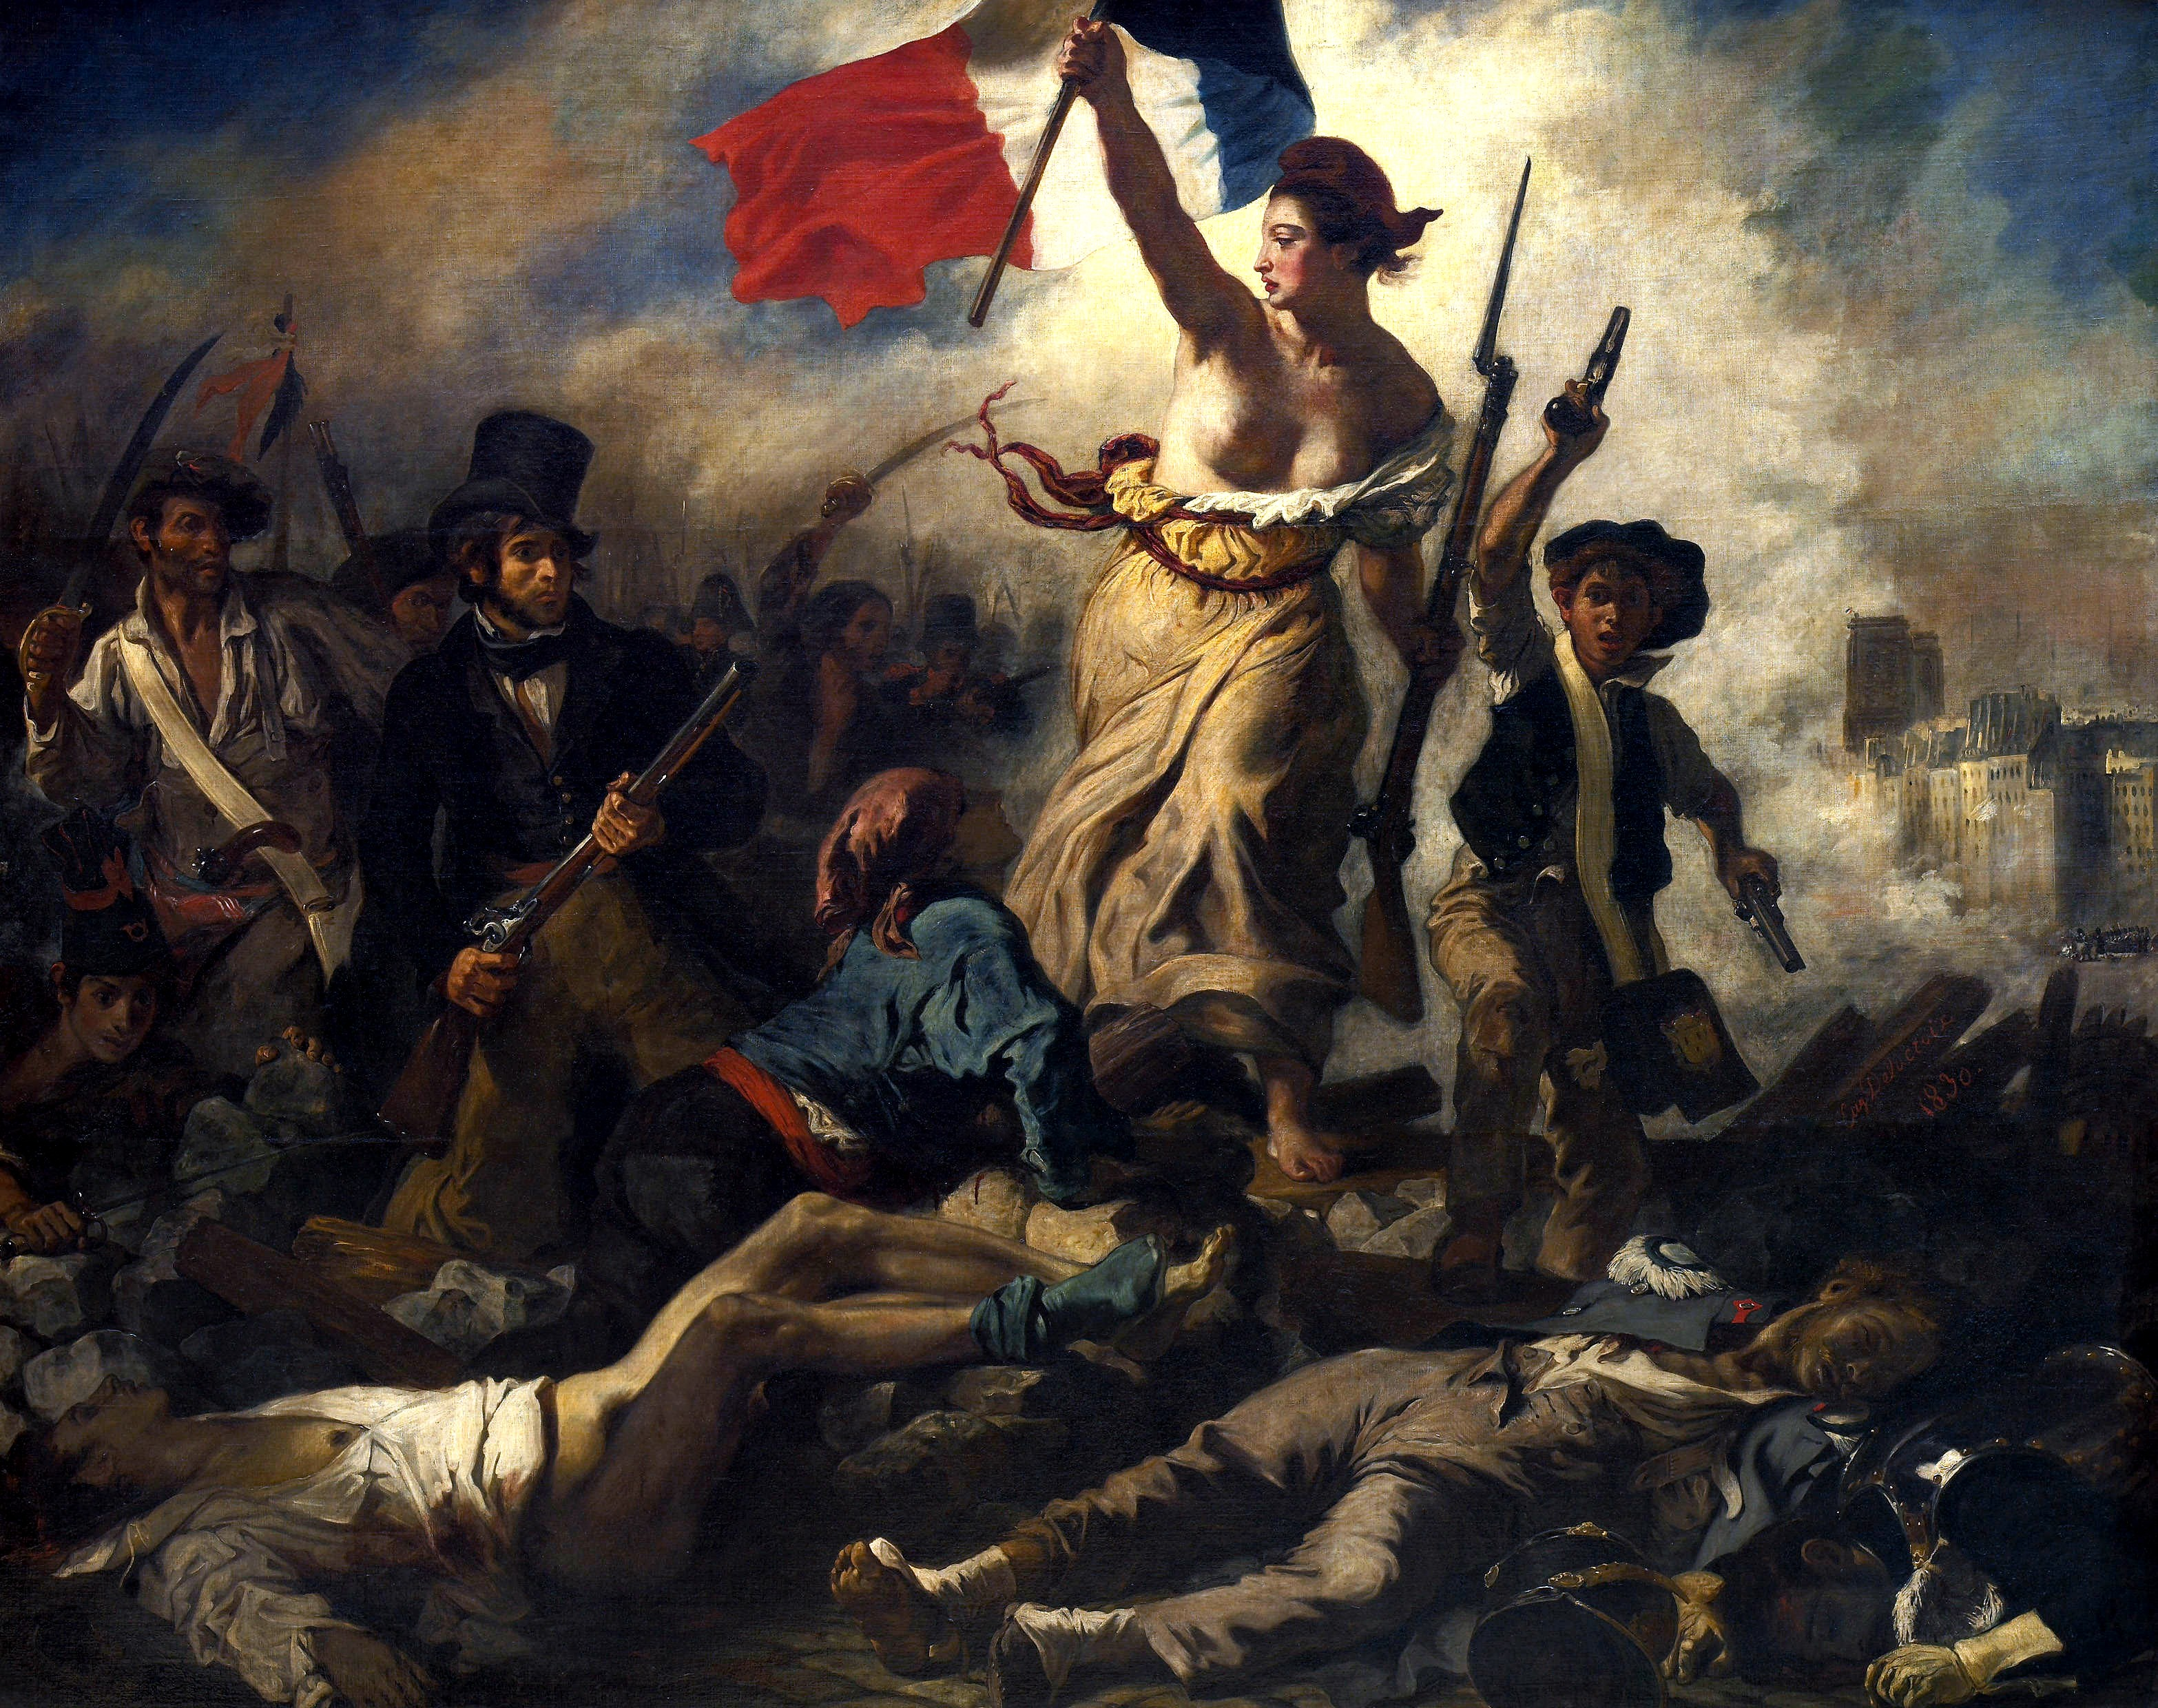 French Romantic art, Liberty Leading the People, Delacroix, 1830